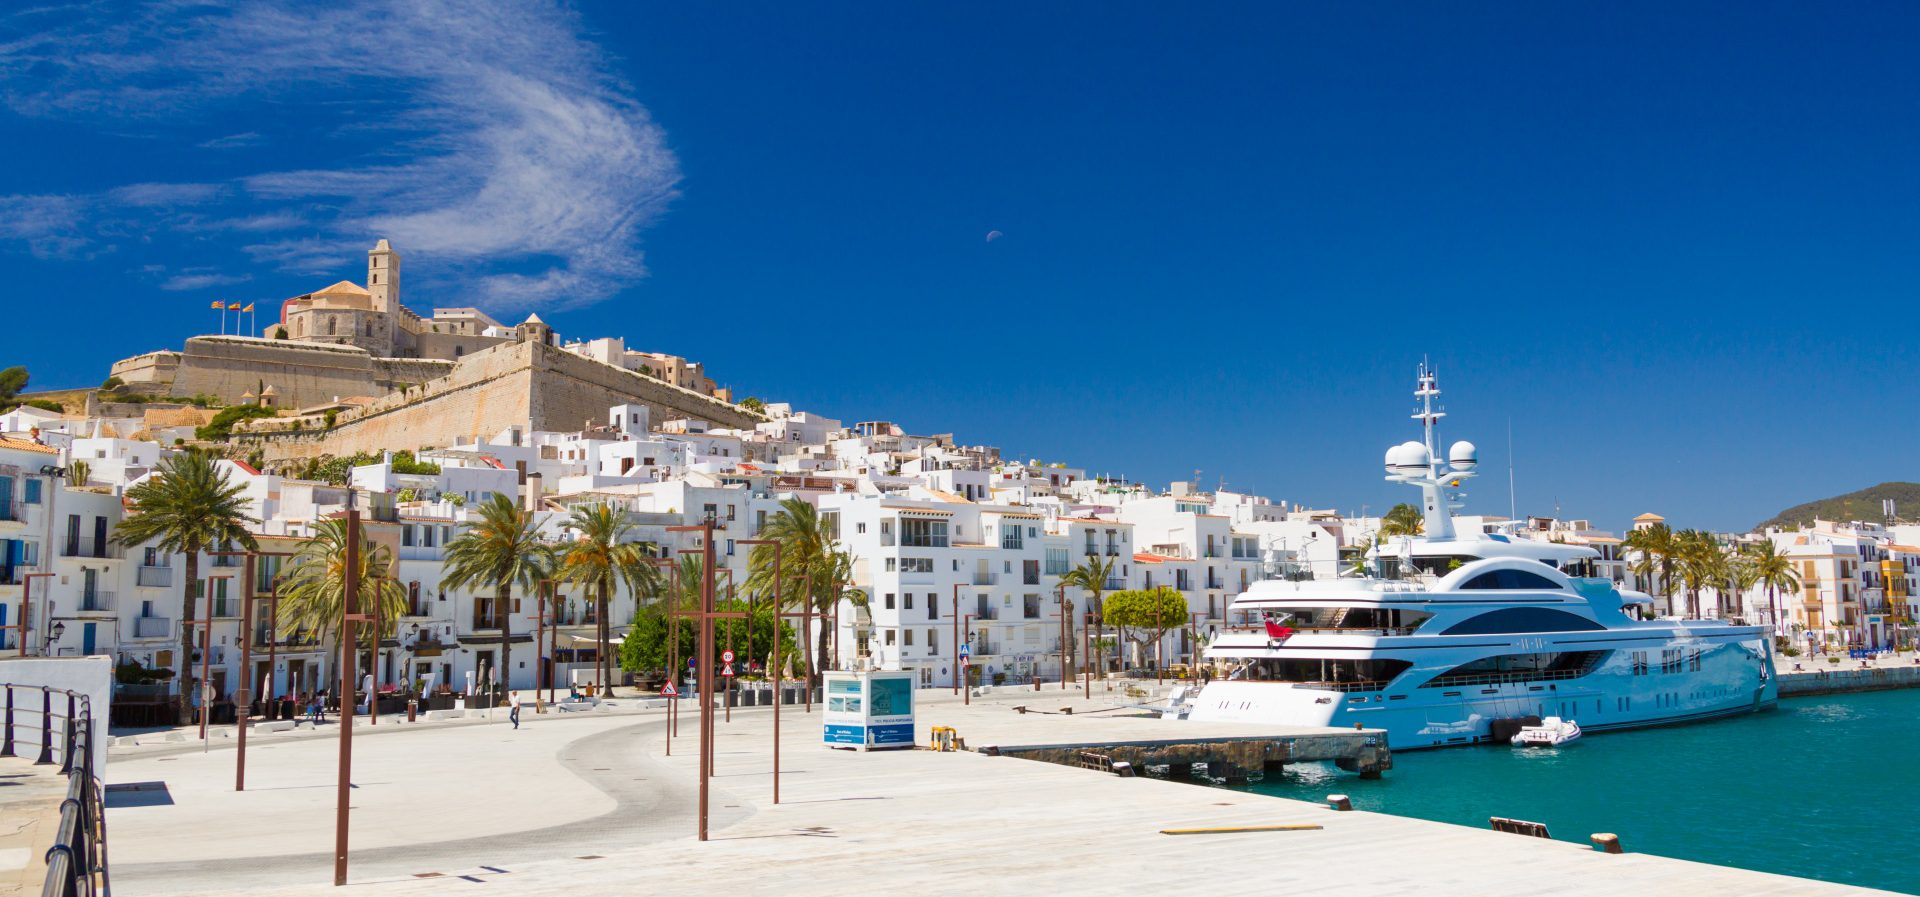 Ibiza 1 e1503924609946 - Ibiza residents worry their island has been sacrificed to tourism